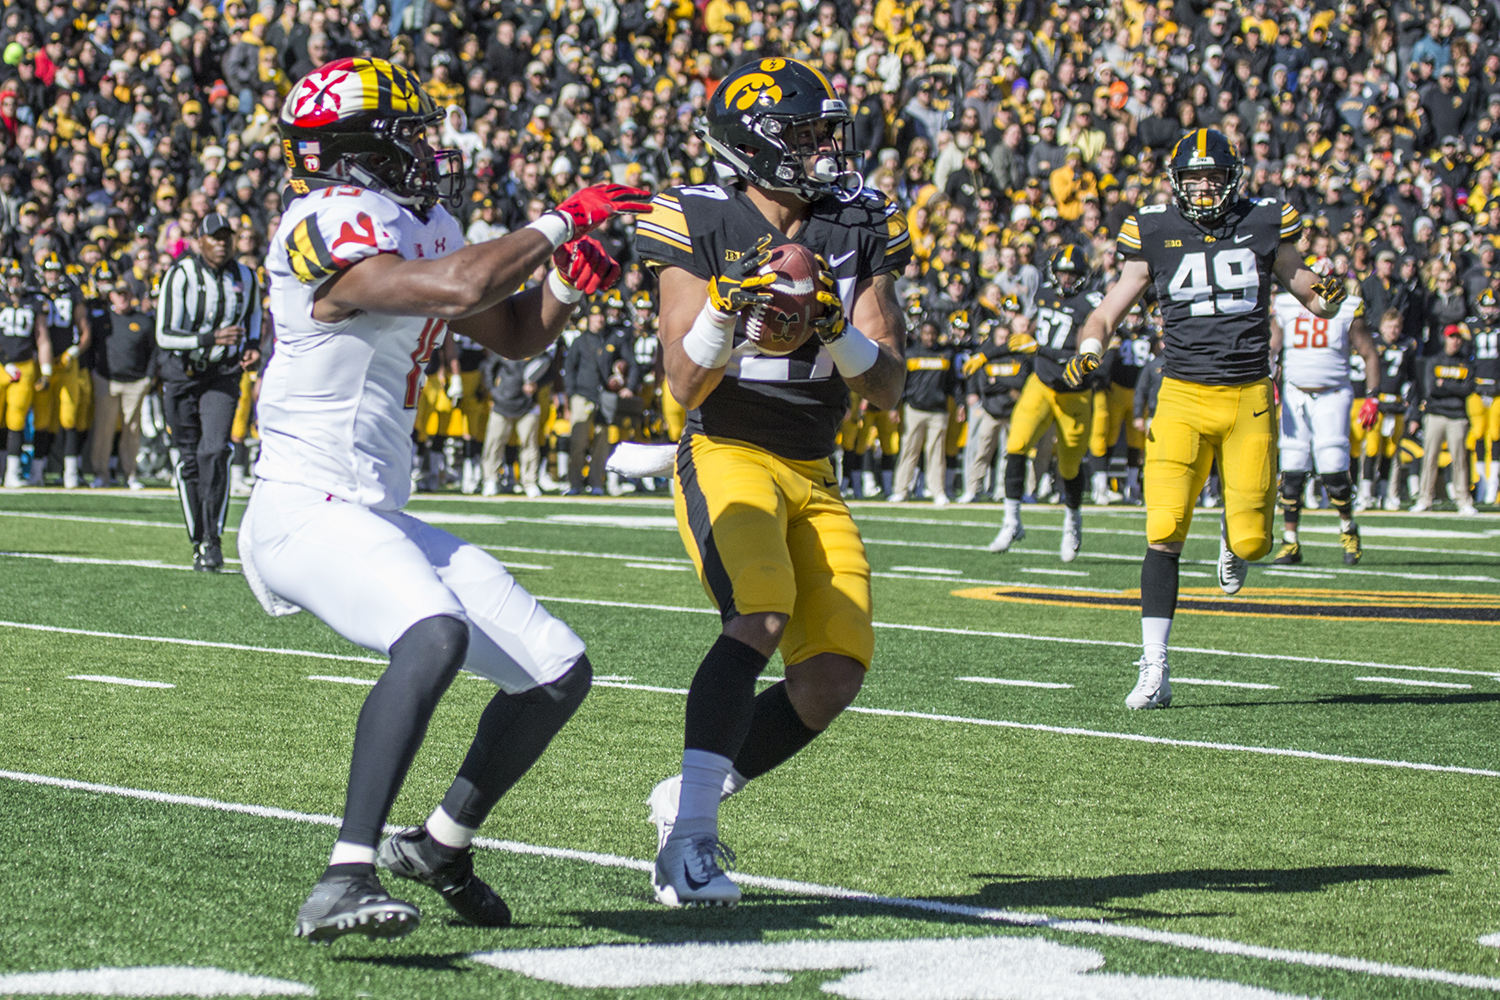 Iowa defensive back Amani Hooker intercepts a Maryland pass during a football game between Iowa and Maryland in Kinnick Stadium on Saturday, October 20, 2018. The Hawkeyes defeated the Terrapins, 23-0.